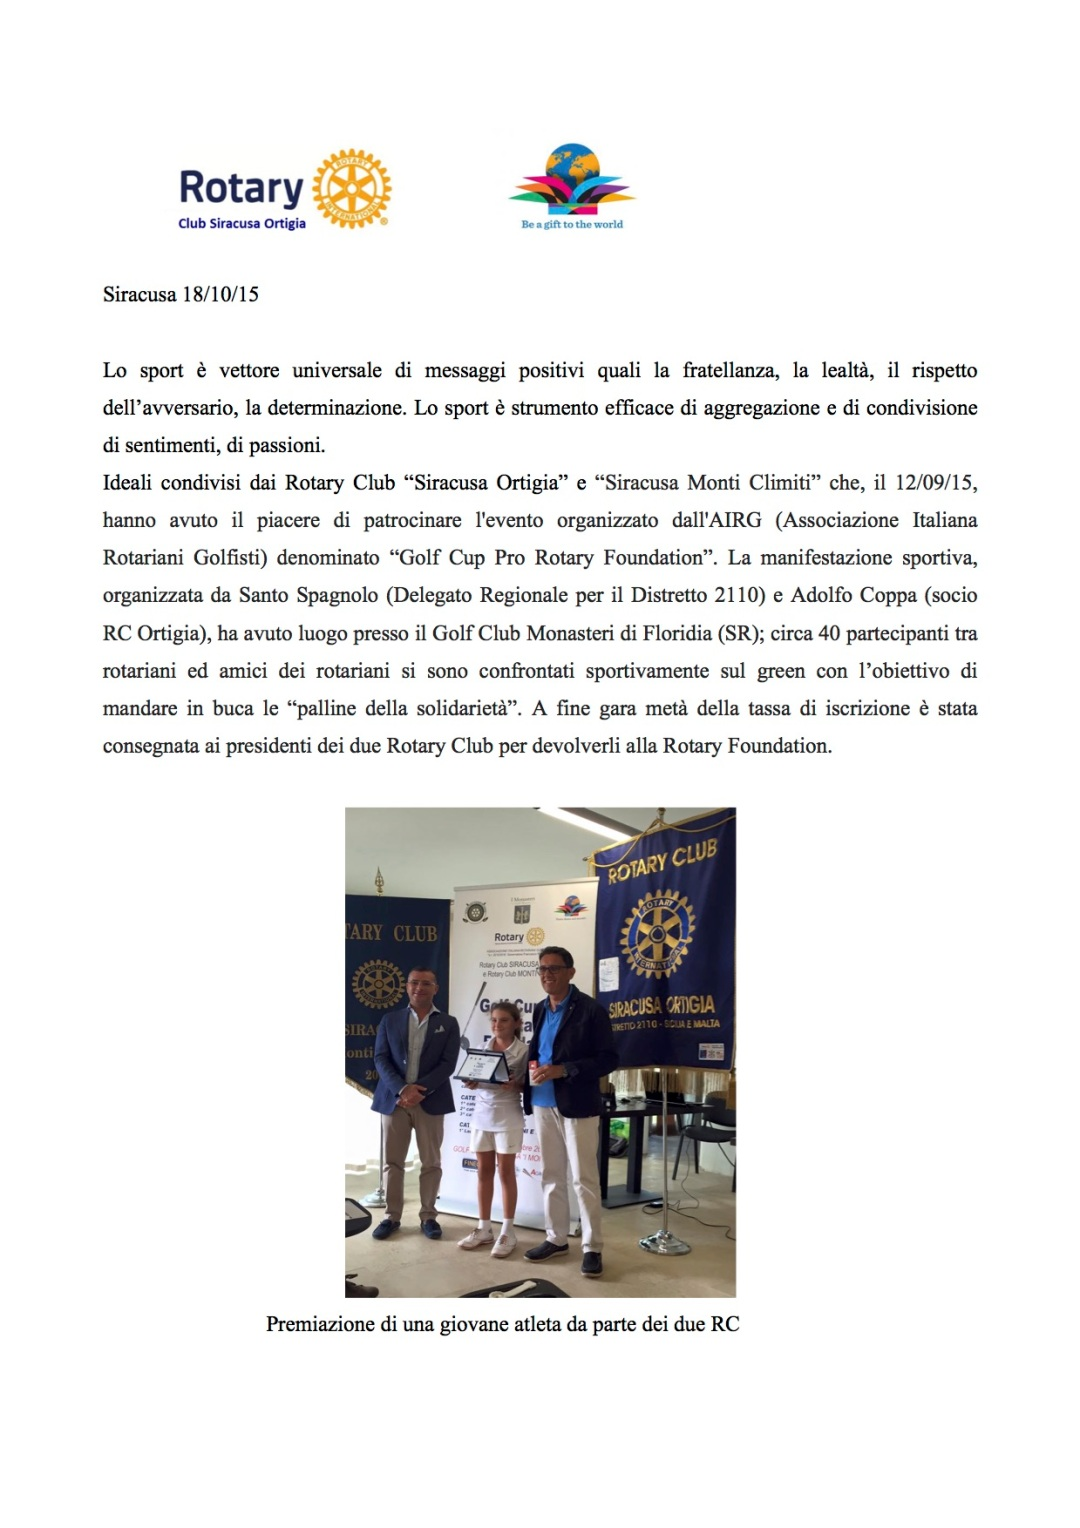 gara-golf-per-rotary-foundation_-per-sito-web